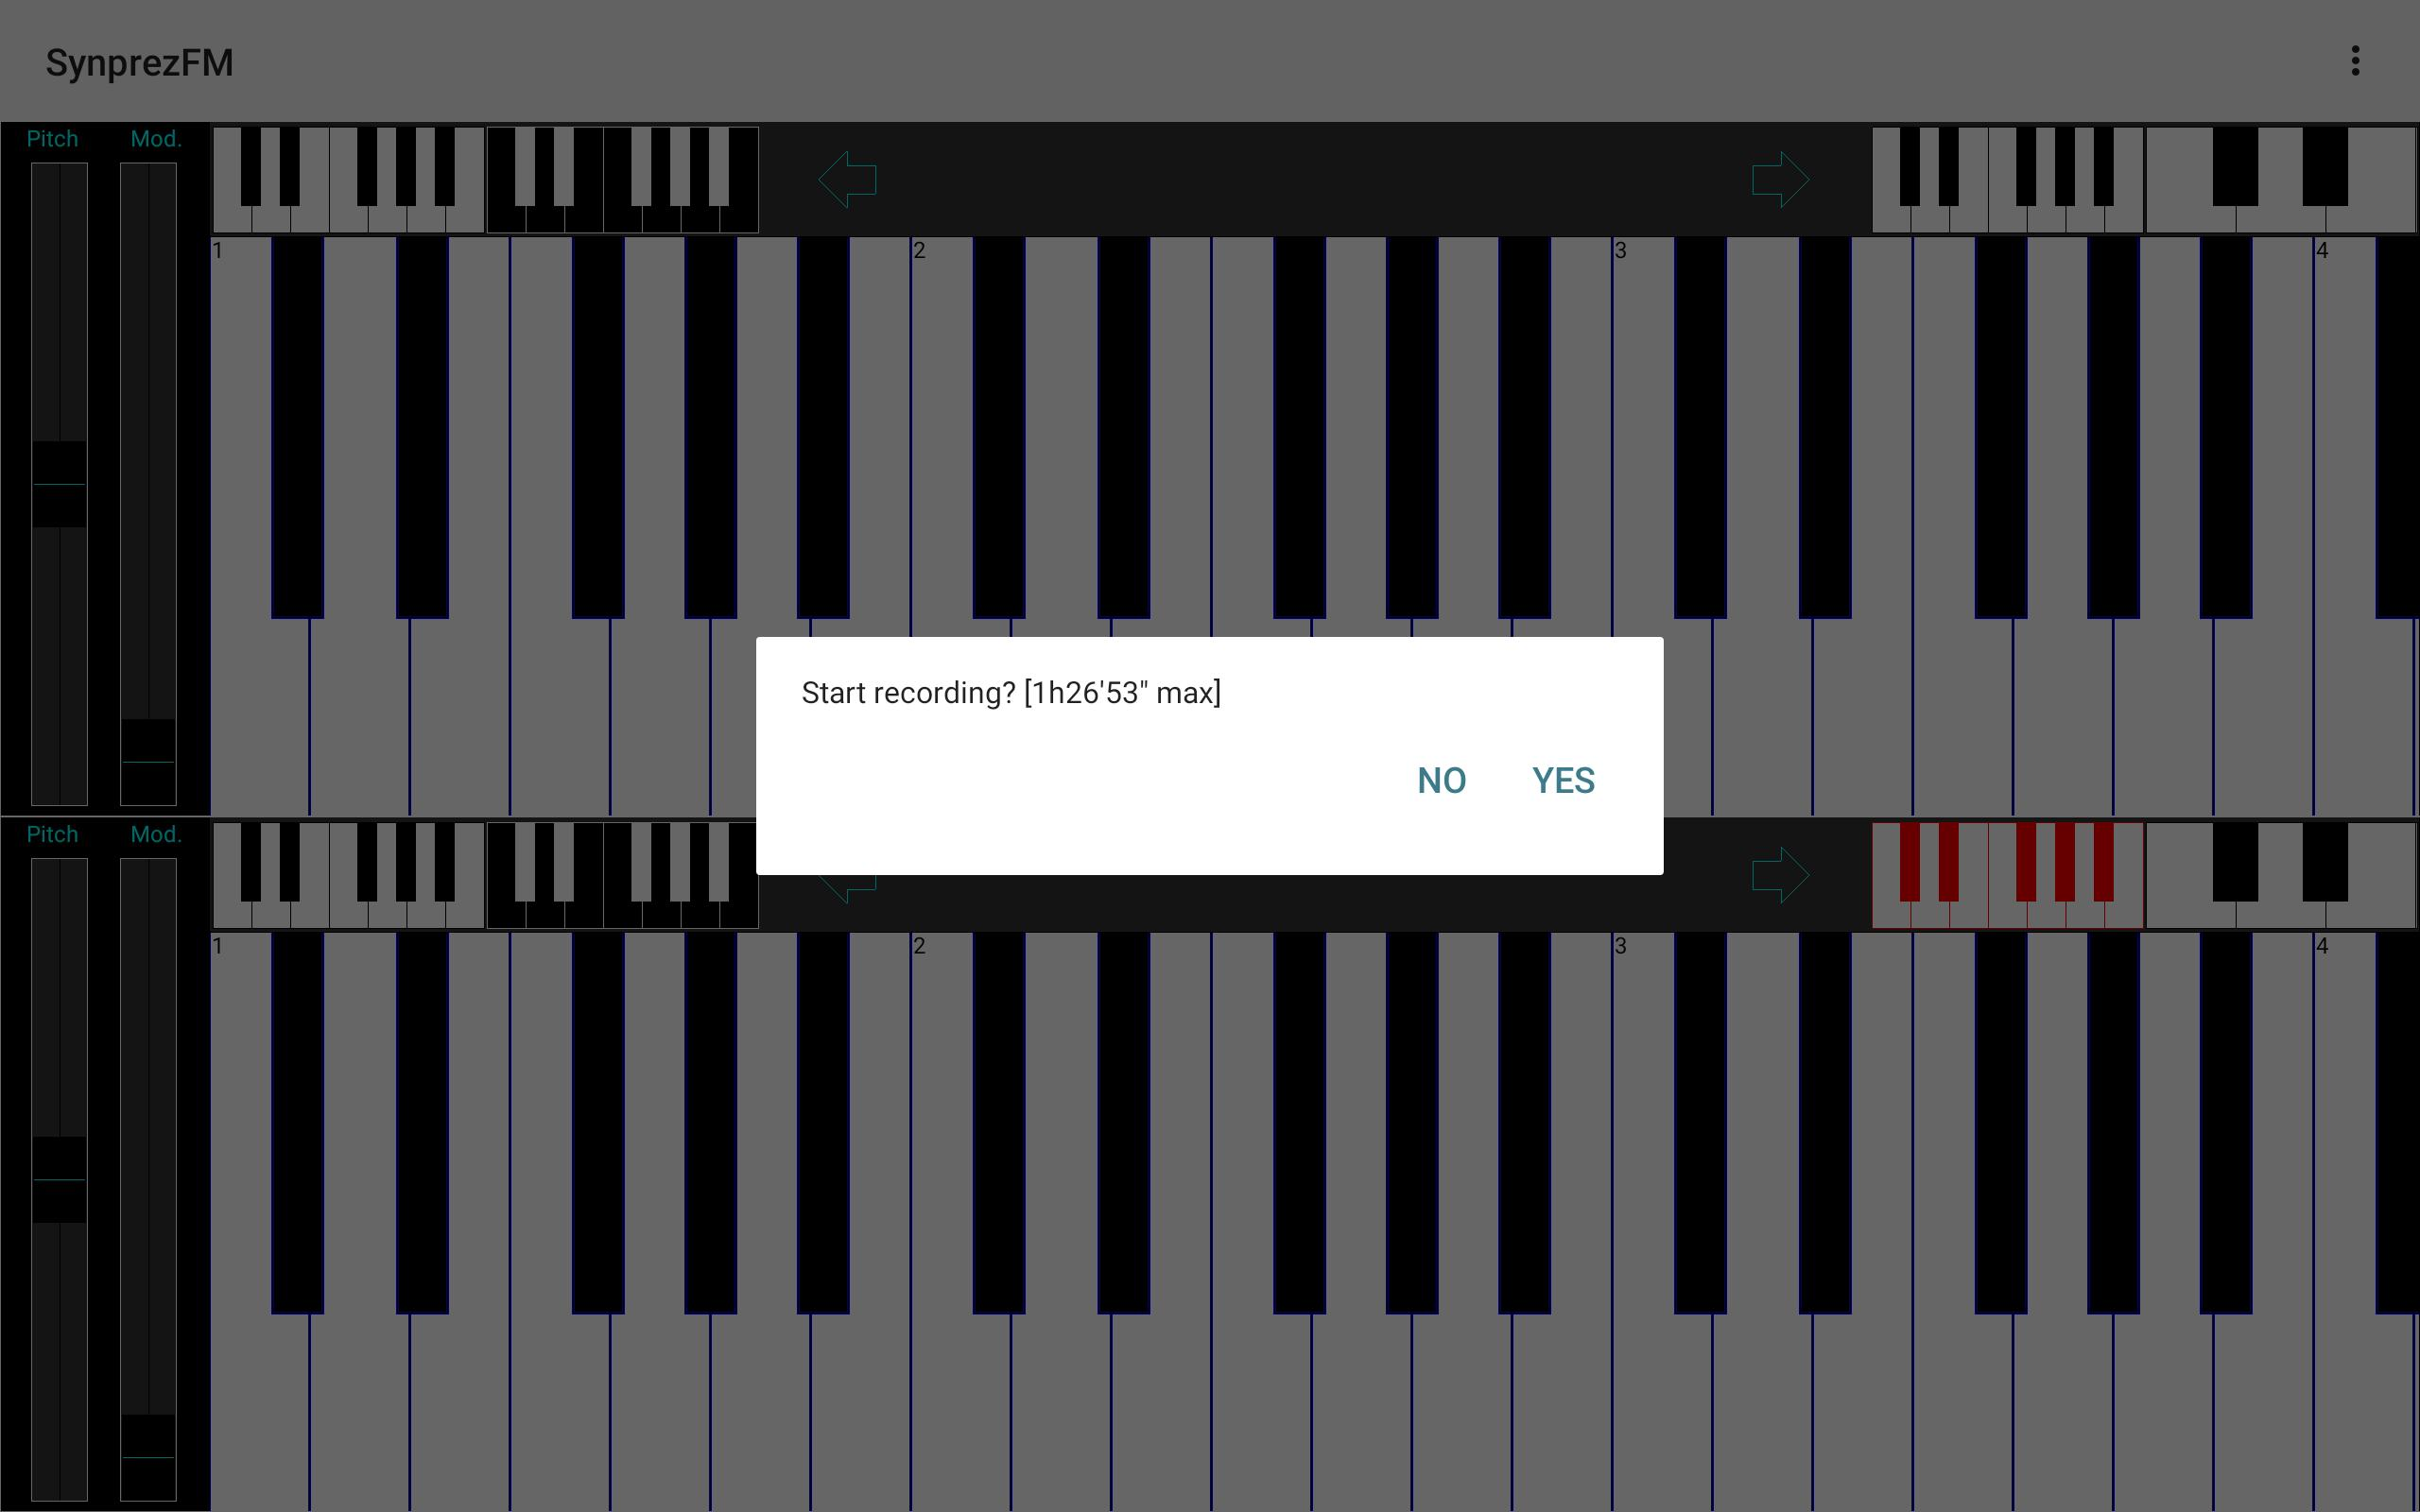 FM Synthesizer [SynprezFM II] for Android - APK Download